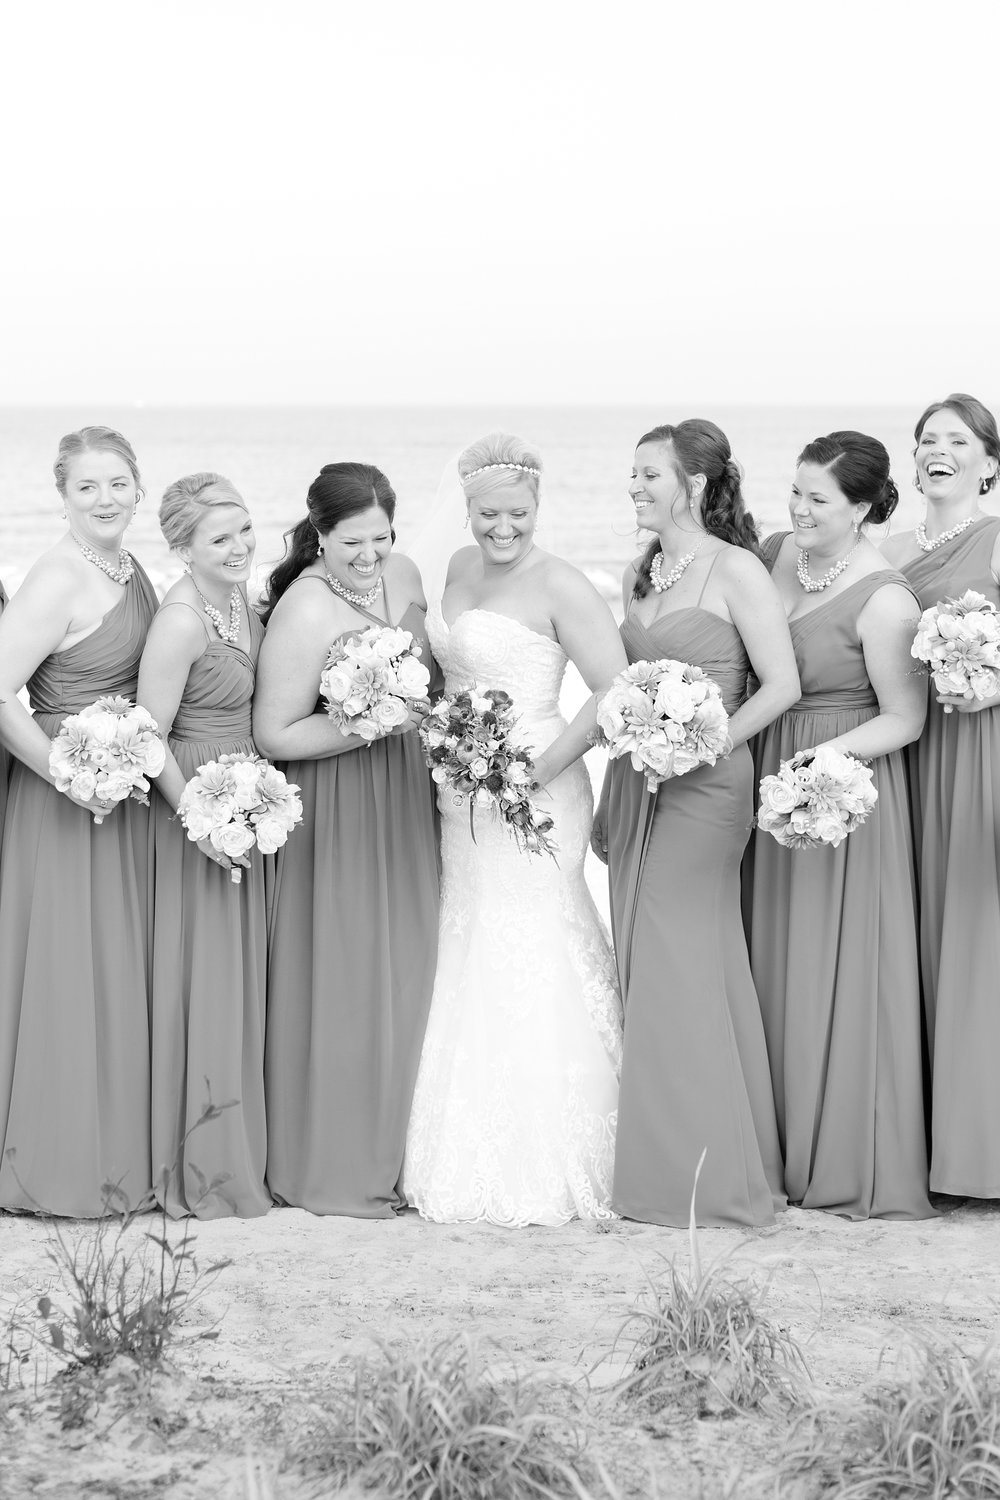 Mankiewicz 4. Bridal Party-452_anna grace photography annapolis maryland wedding photographer herrington on the bay wedding photo.jpg